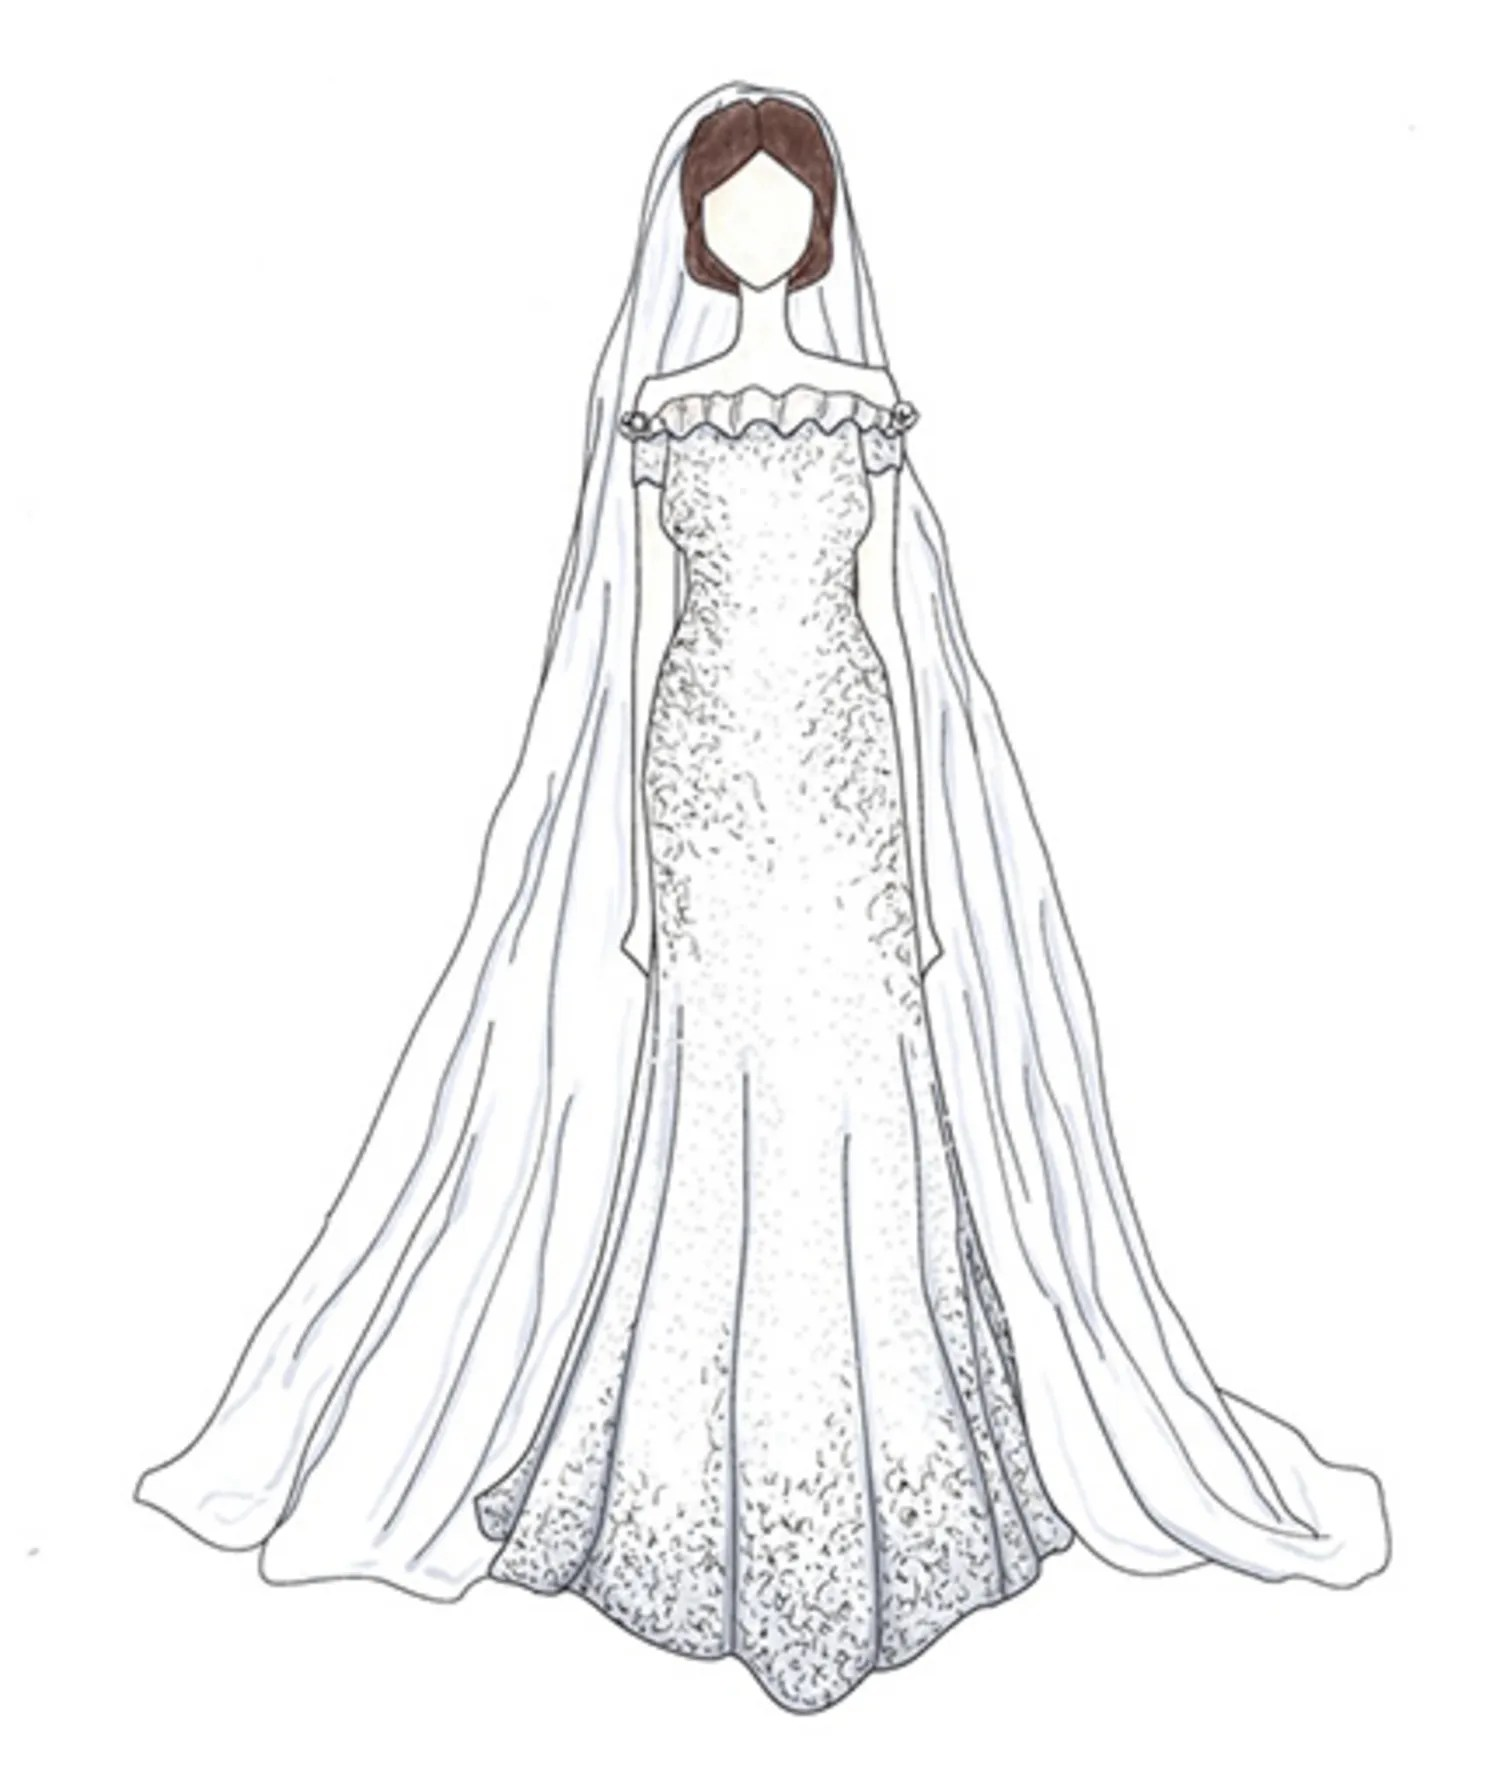 b57f4d06db07 Celebrity Wedding Dresses 44 Of The Most Unforgettable Wedding Dresses Of  All Time